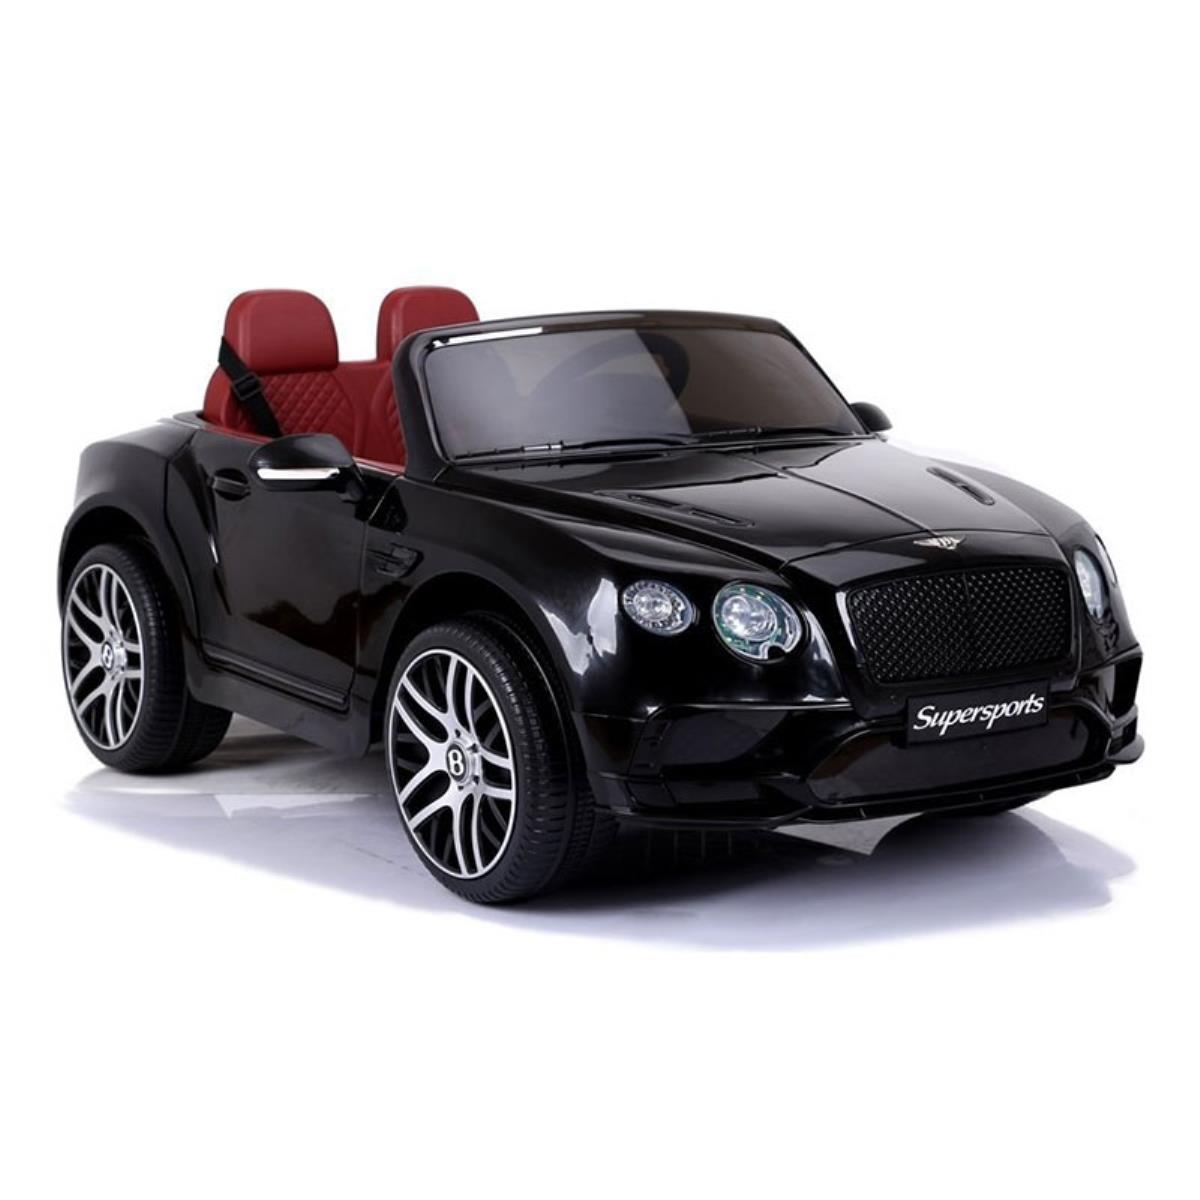 Compre Online Coche Electrico Bentley Supersports 12v Negro